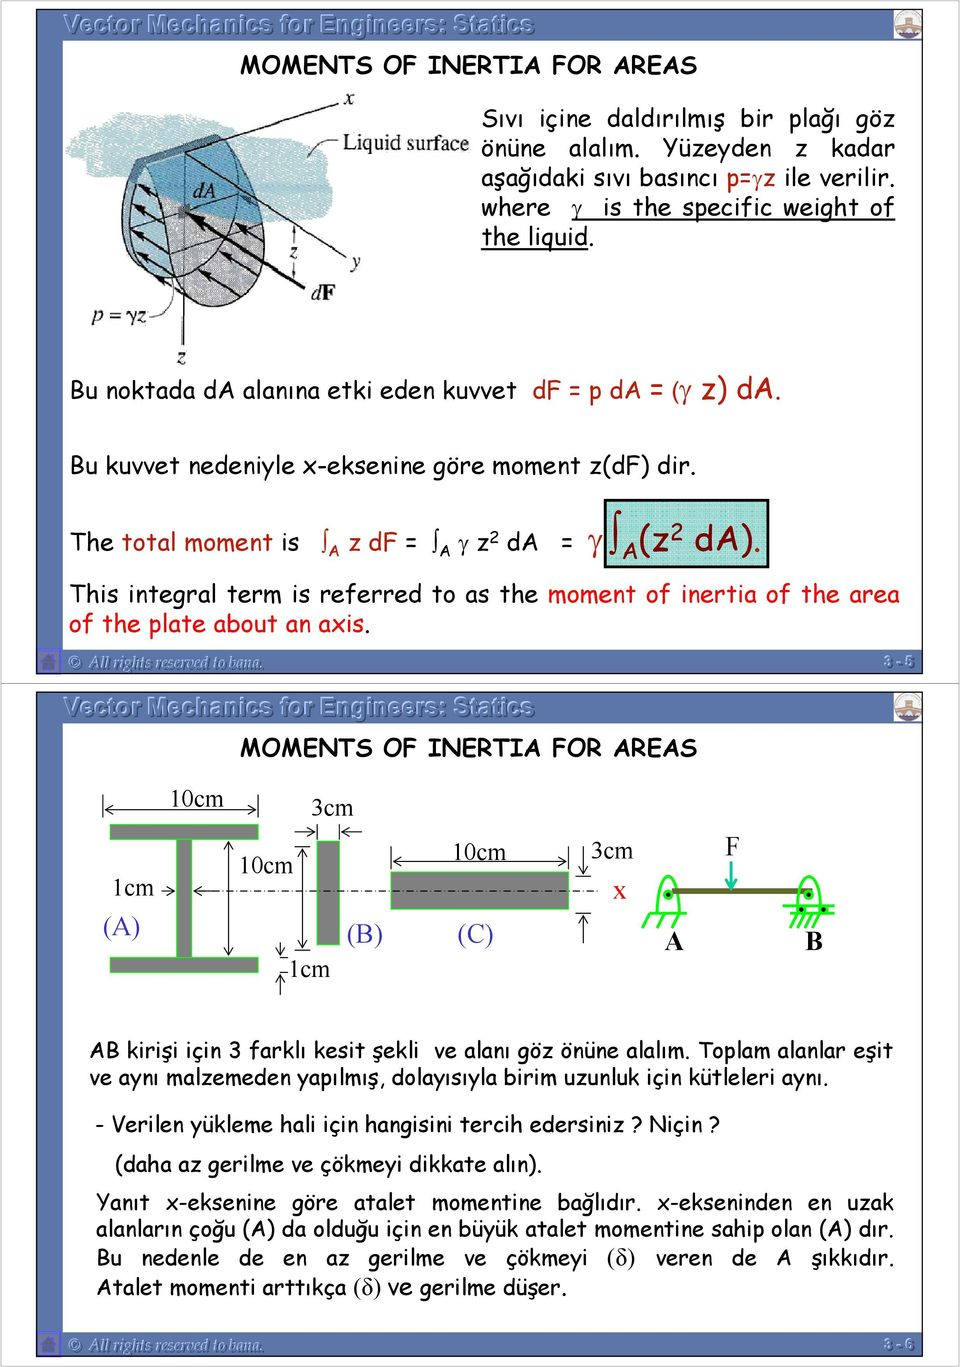 of the area of the plate about an axis All rights reserved to bana -- 55 MOMENTS OF INERTIA FOR AREAS 10cm cm 1cm (A) 10cm 1cm (B) 10cm (C) cm x A F B AB kirişi için farklı kesit şekli ve alanı göz